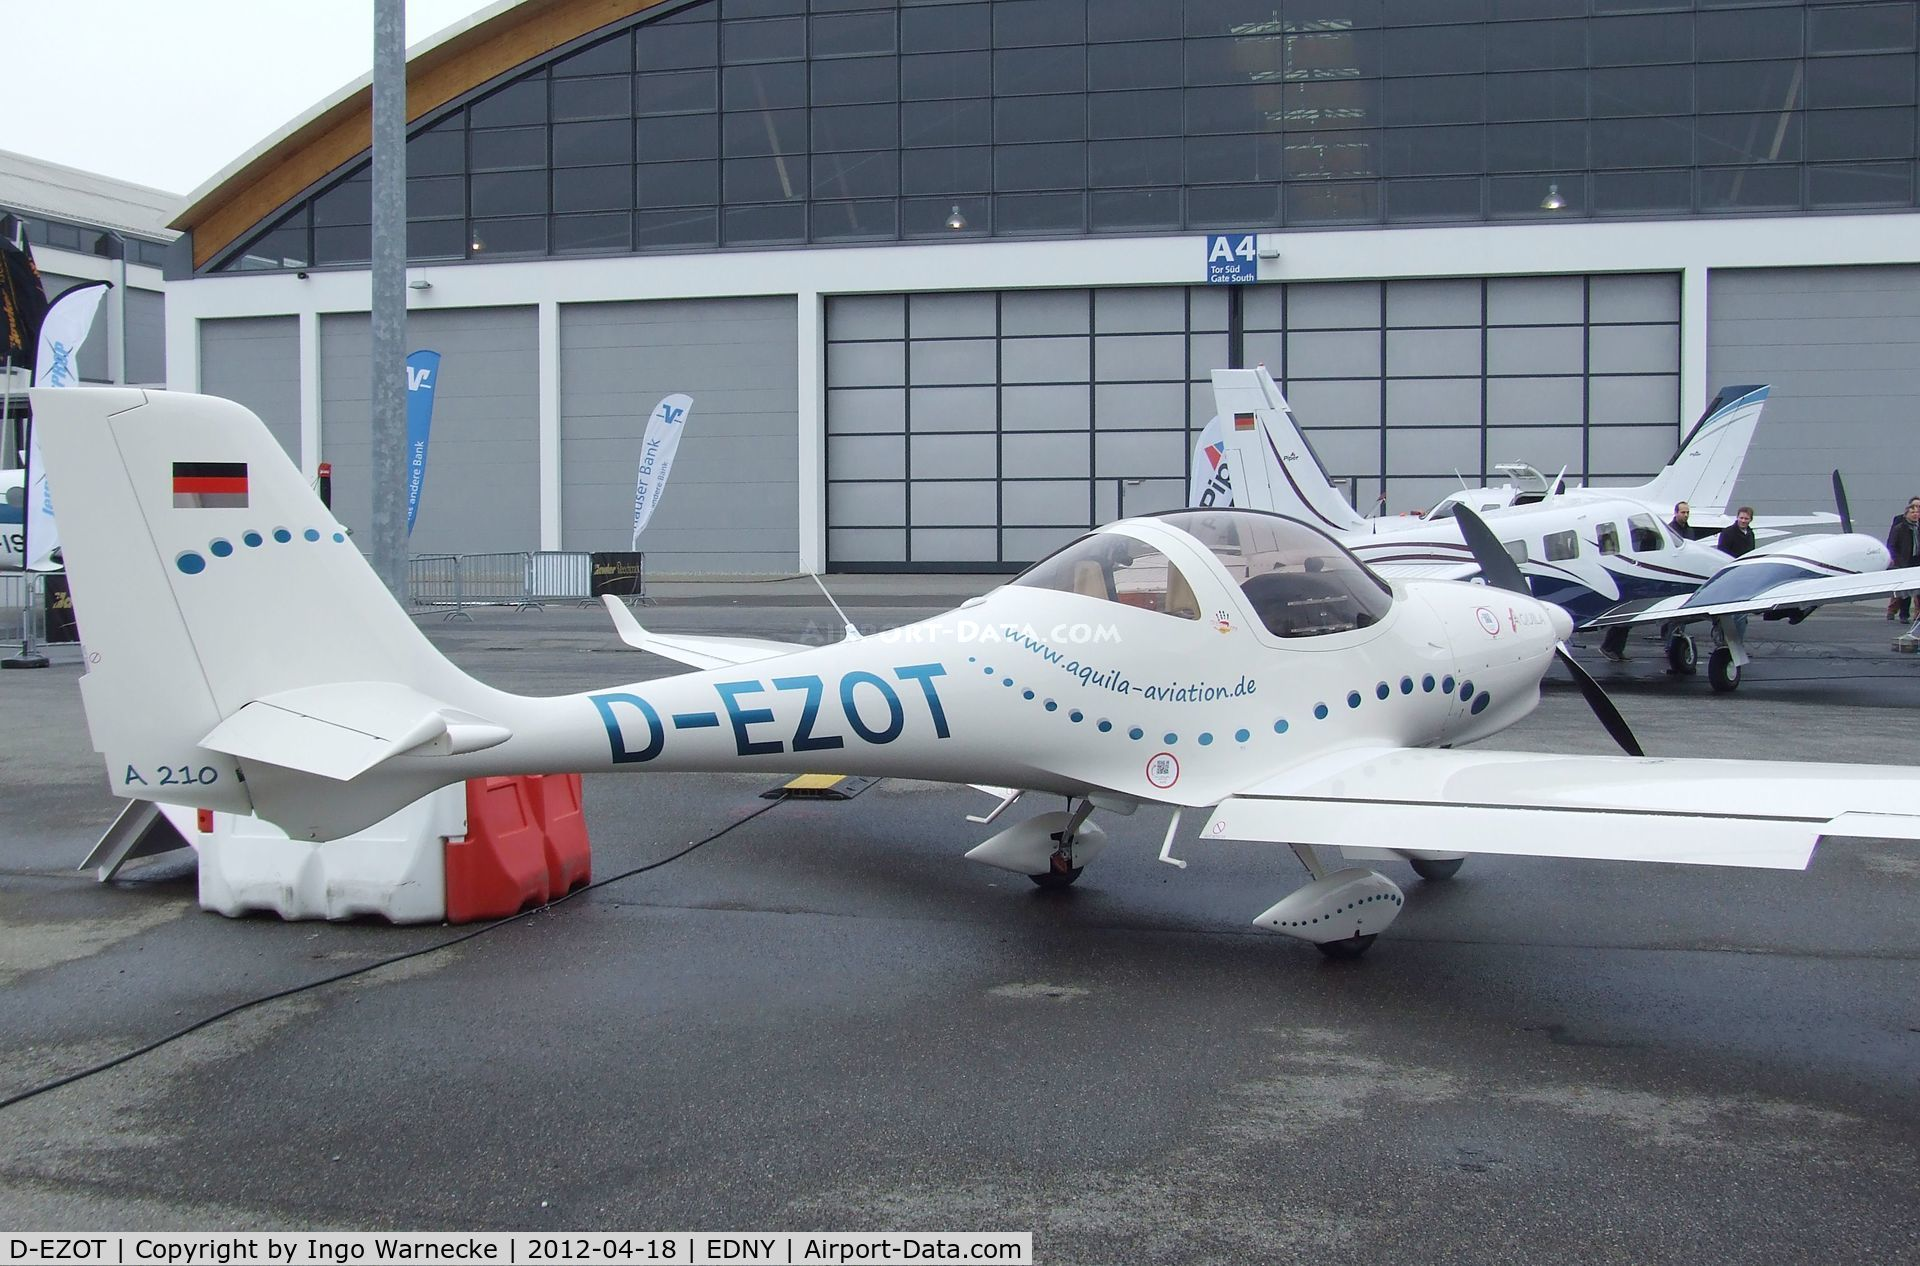 D-EZOT, Aquila A210 (AT01) C/N AT01-228, Aquila AT01 A 210 at the AERO 2012, Friedrichshafen